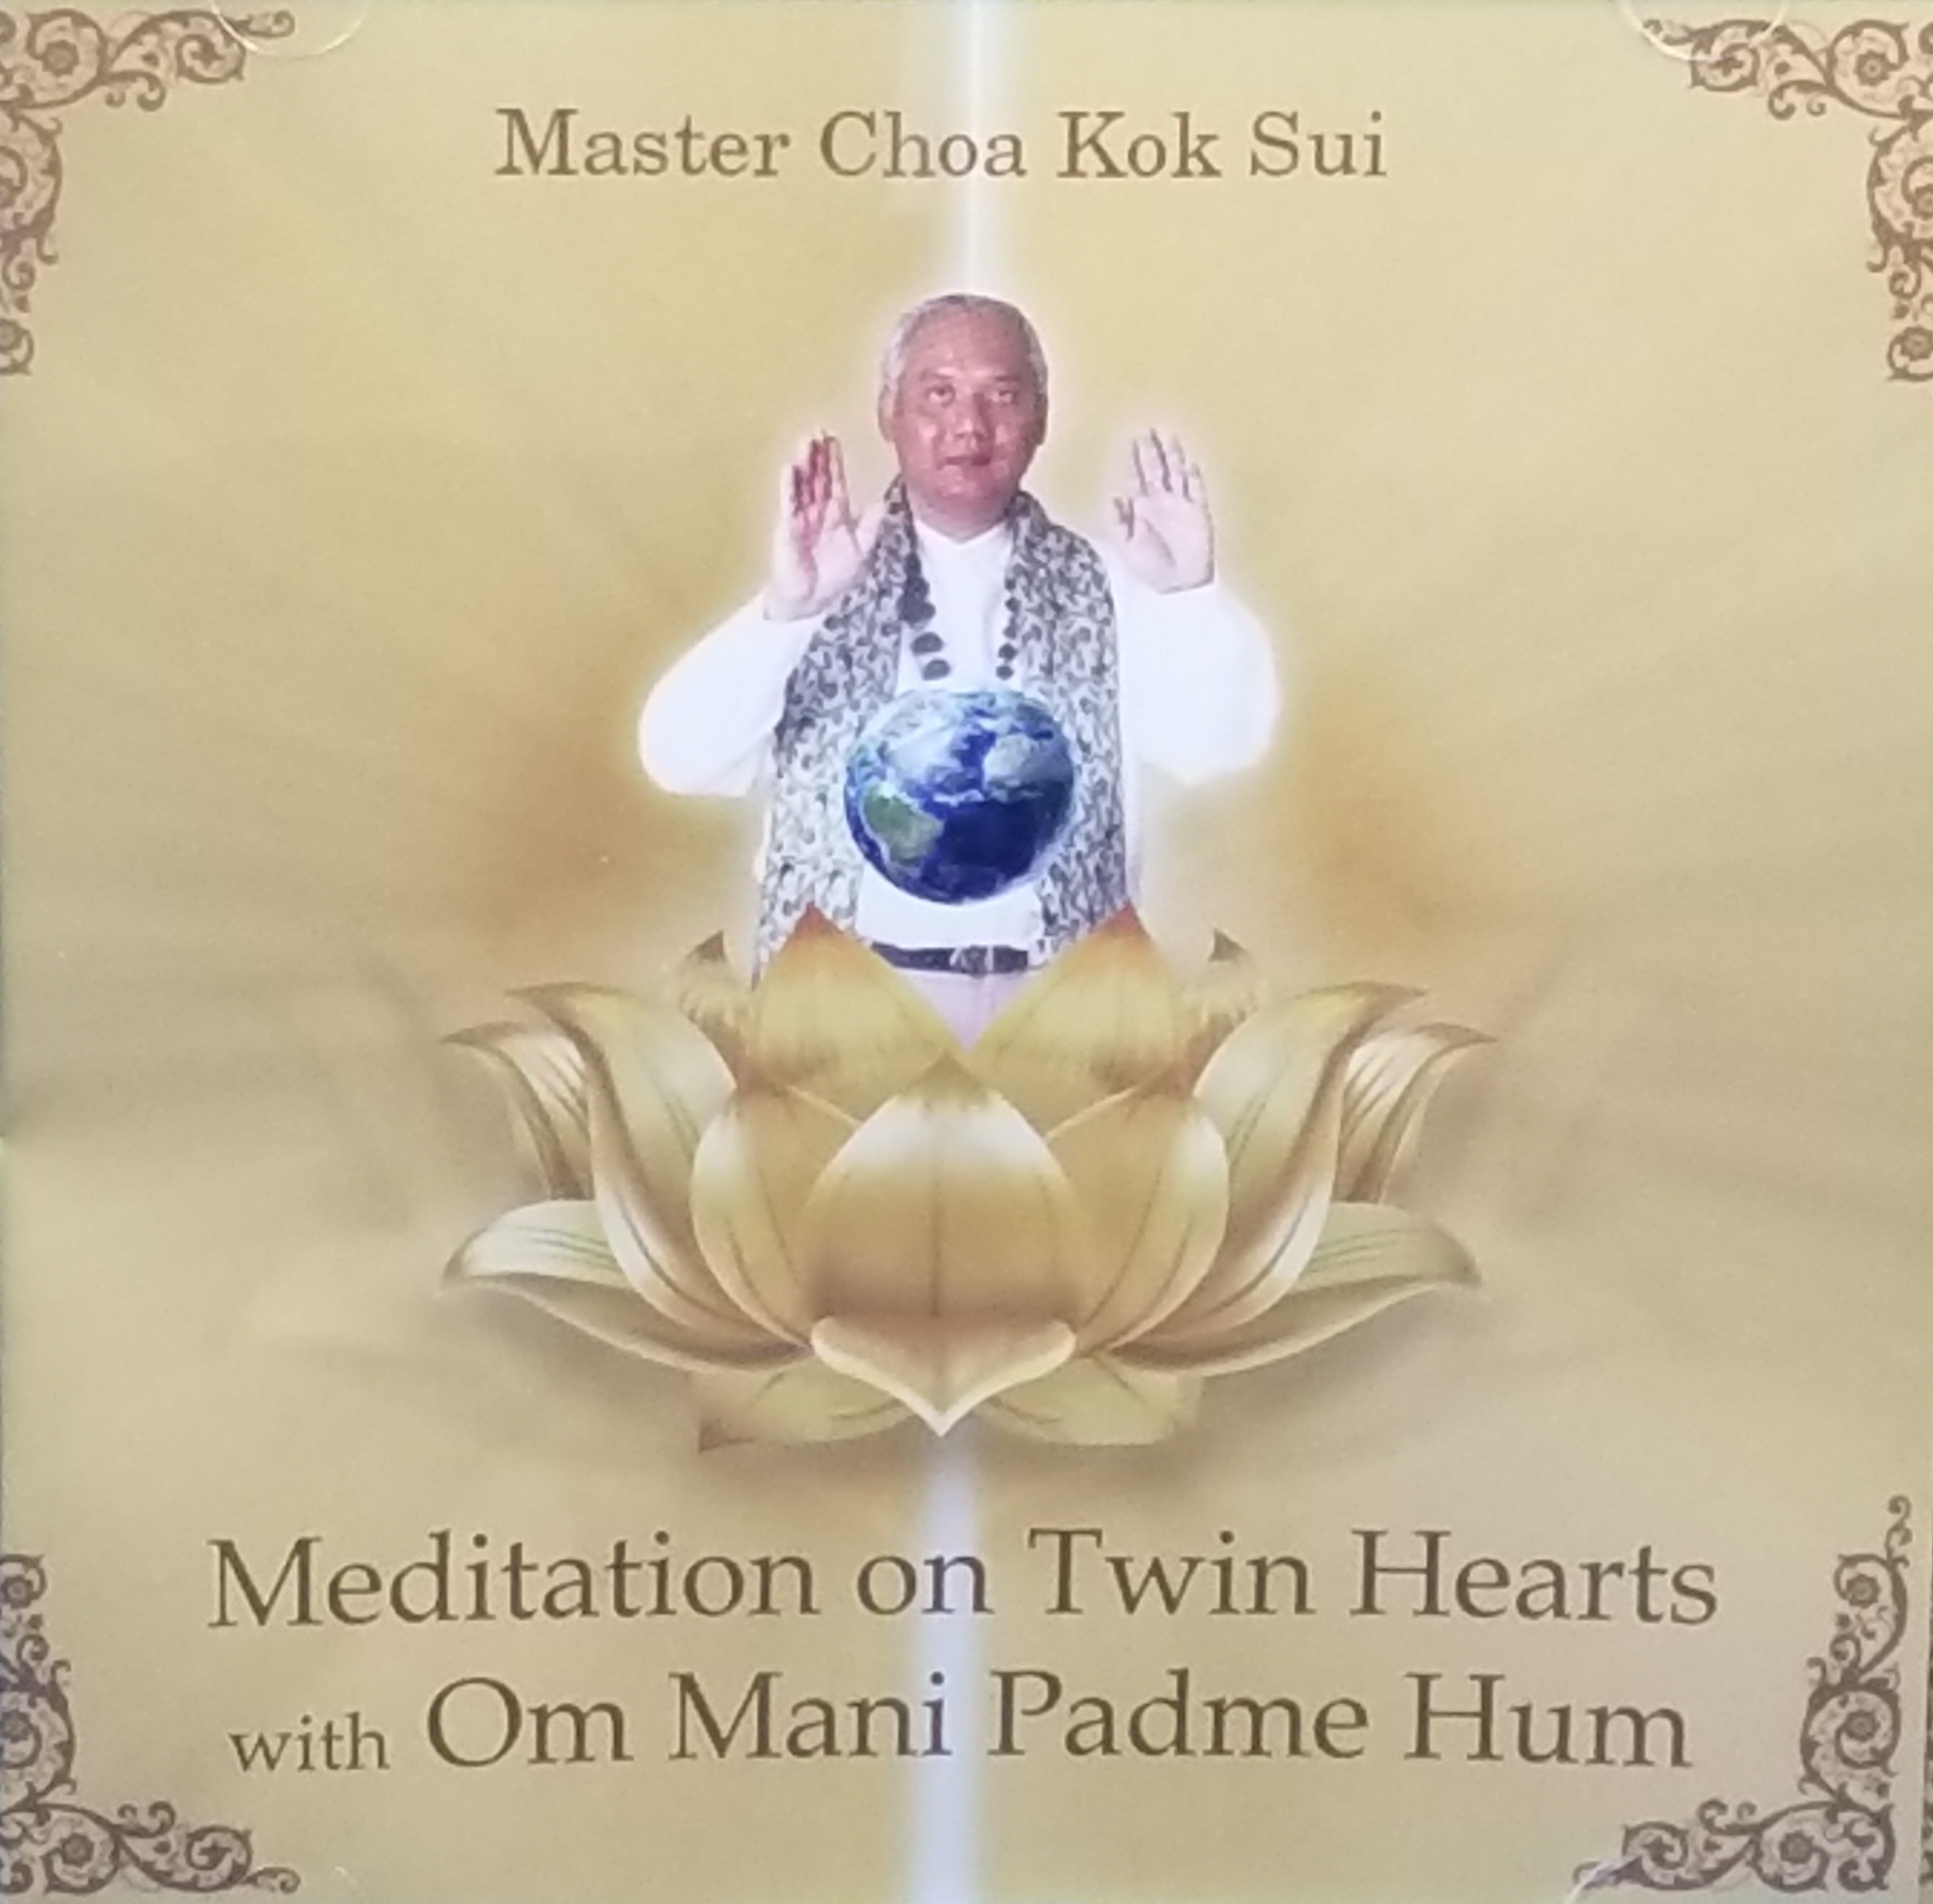 Meditation on Twin Hearts with Om Mani Padme Hum